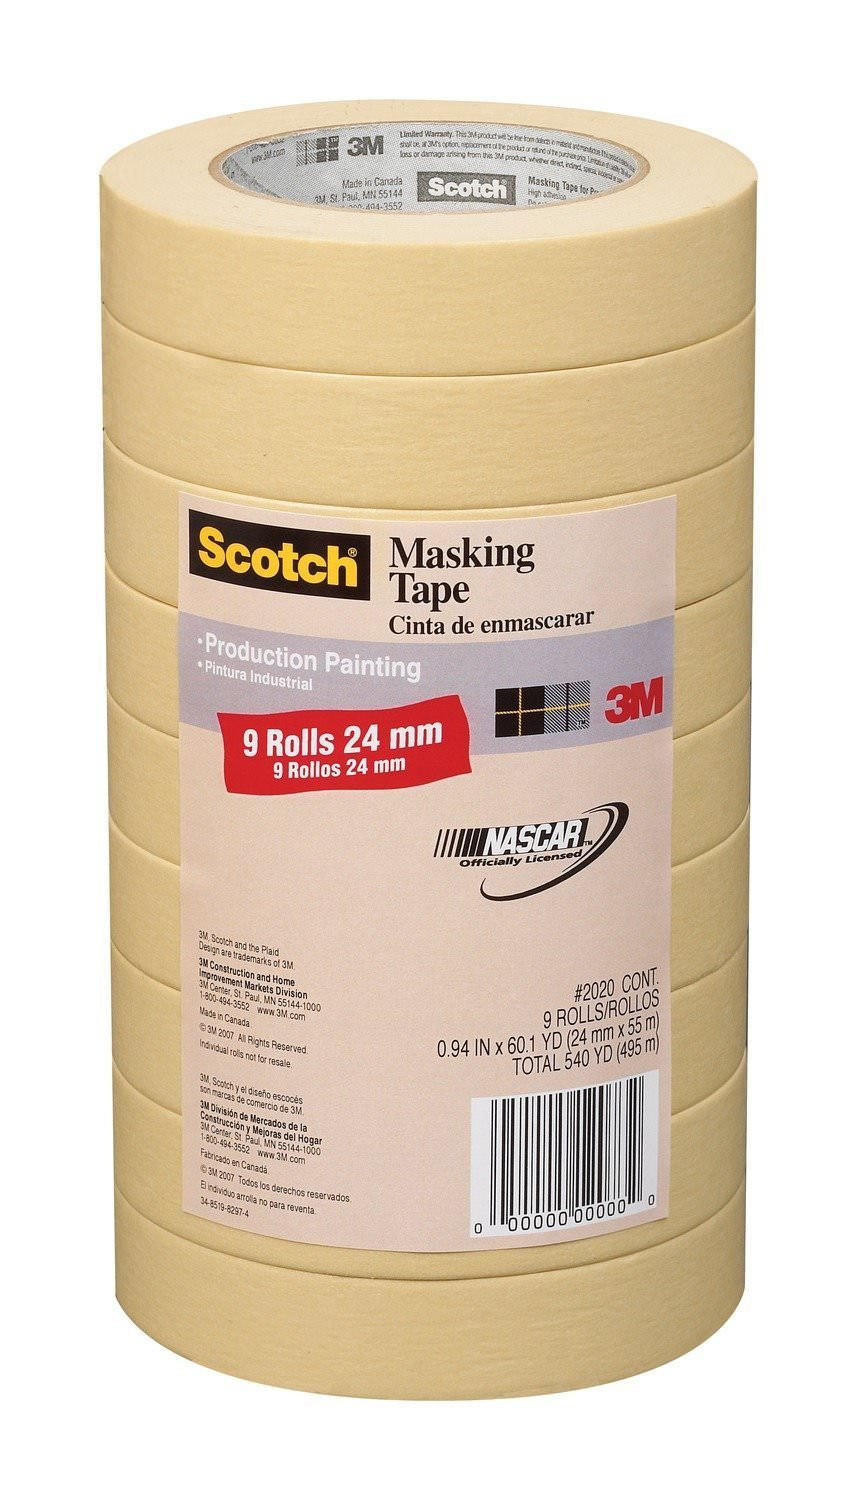 3M Scotch General Purpose Masking Tape 2020-24A-CP, 0.94-Inch by 60.1-Yards, 5 Set (9 Rolls)